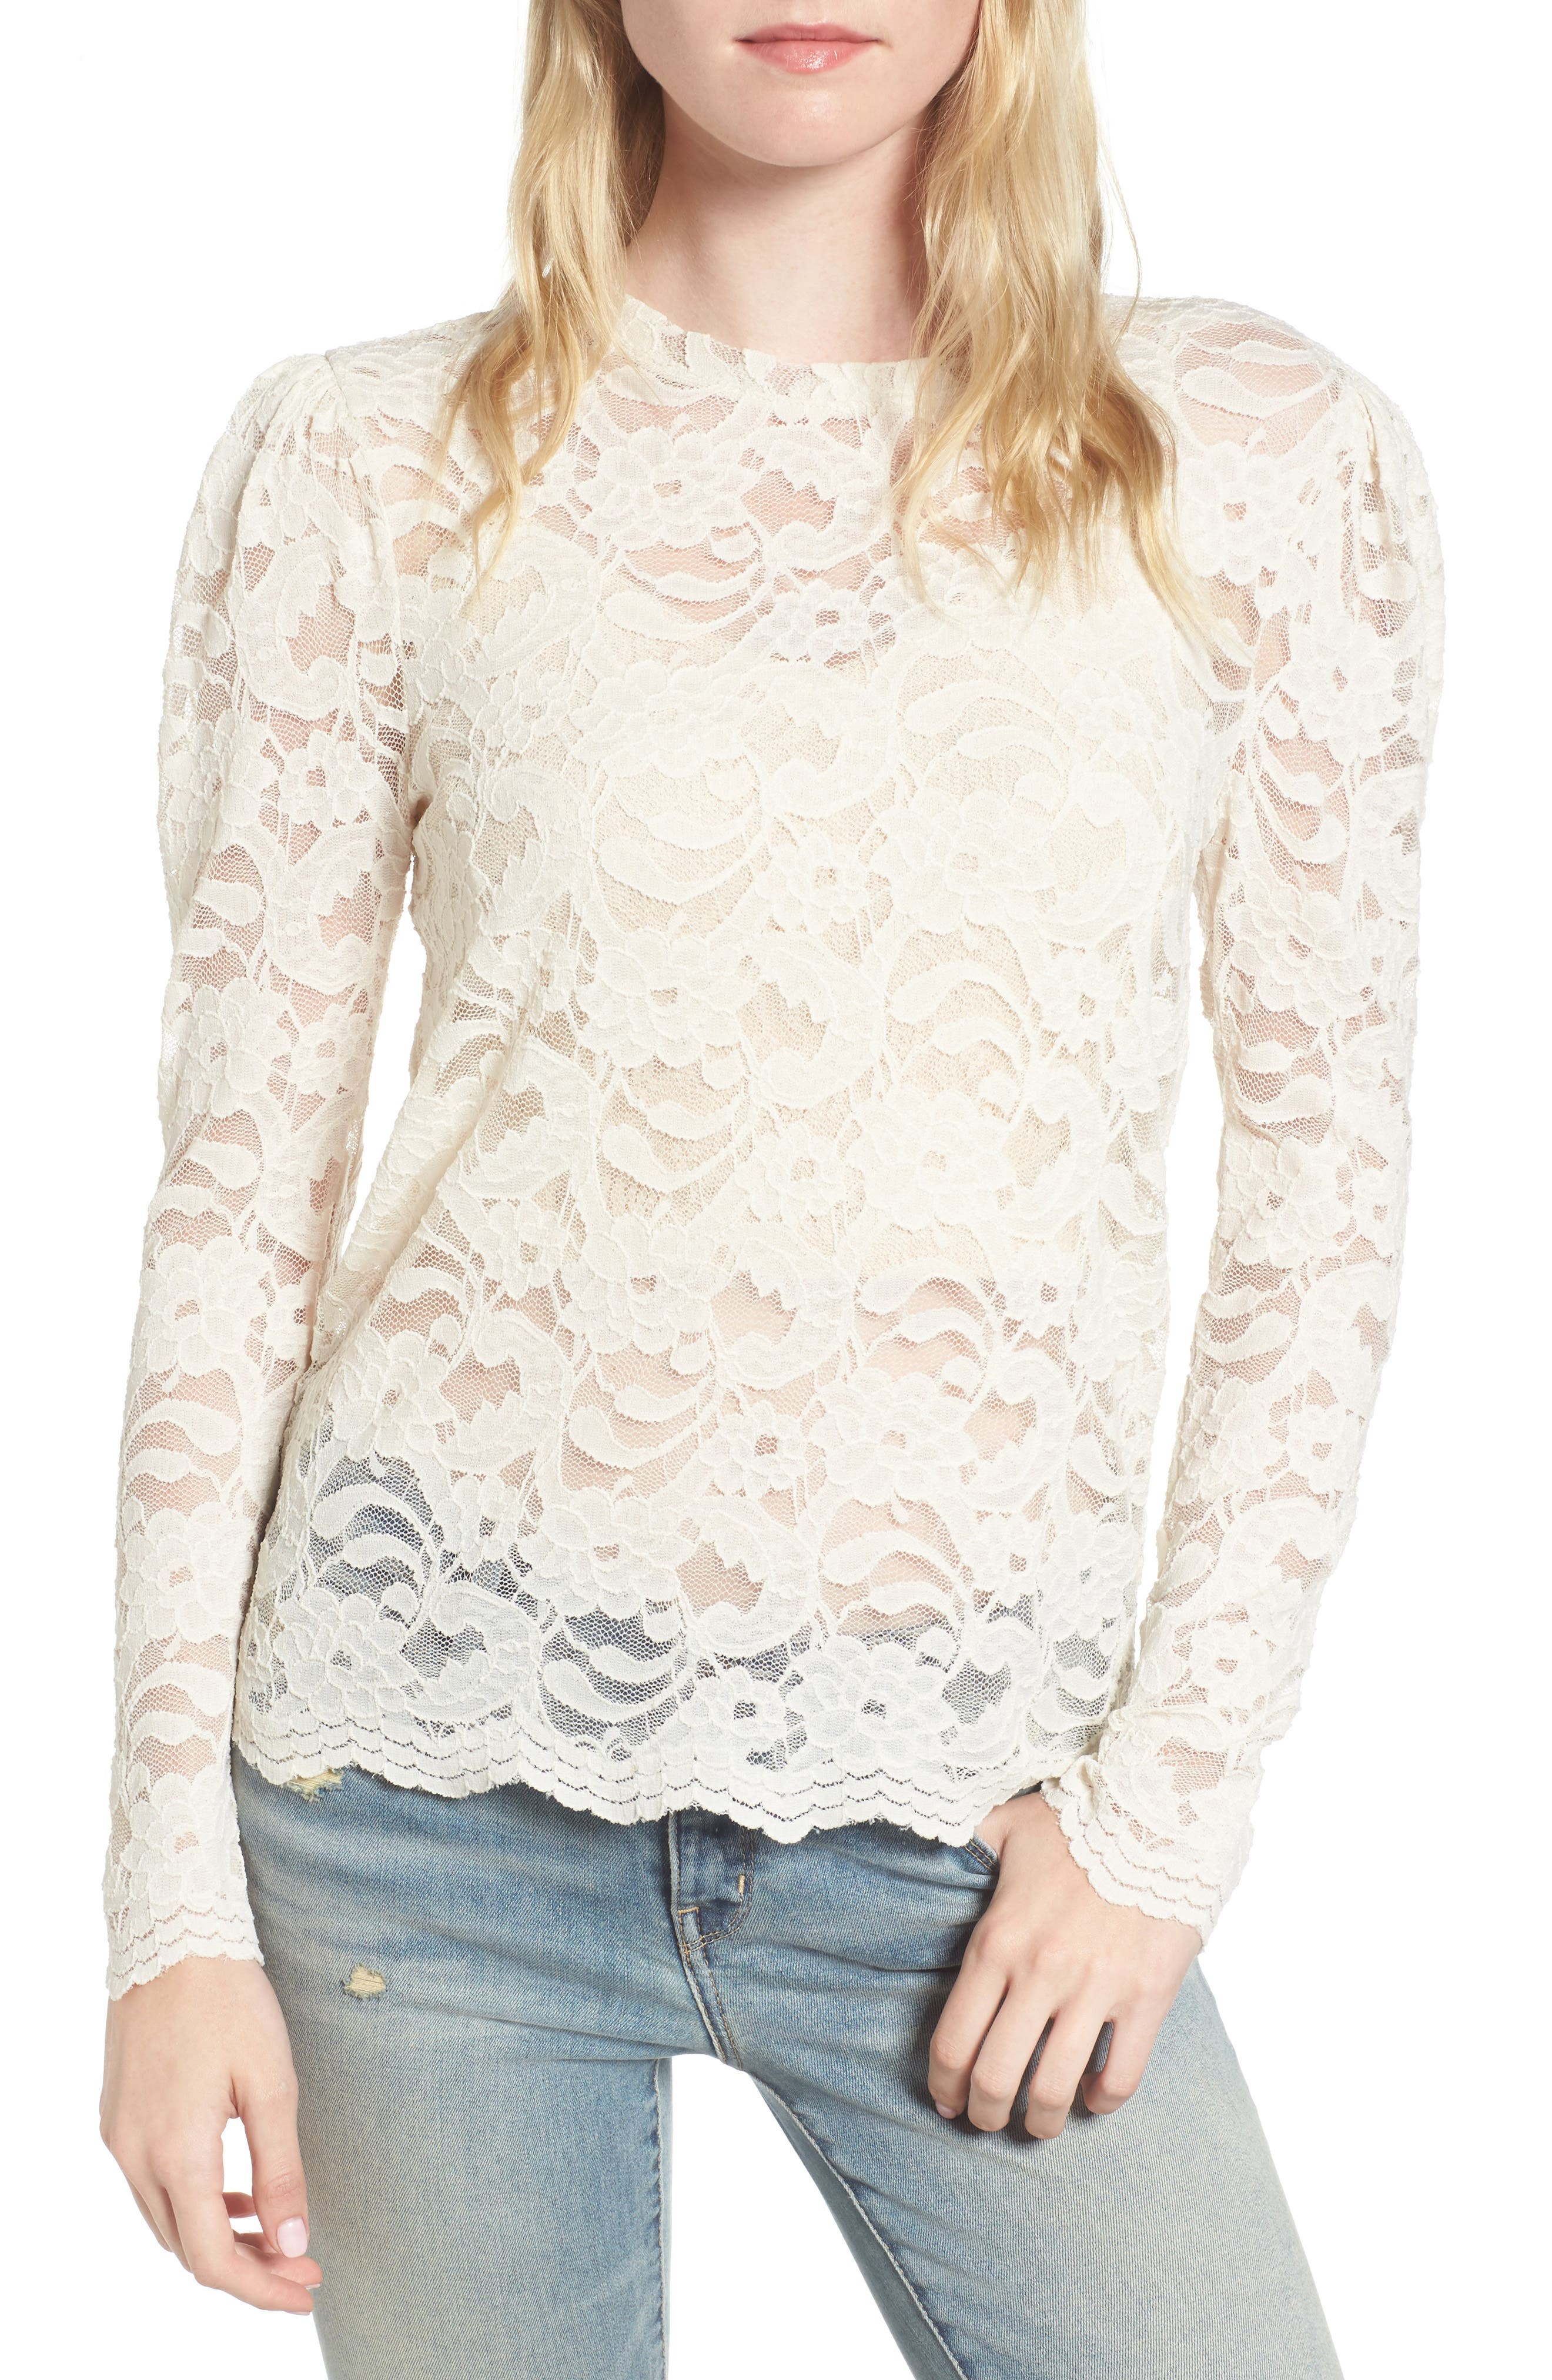 Alternate Image 1 Selected - Hinge Lace Top